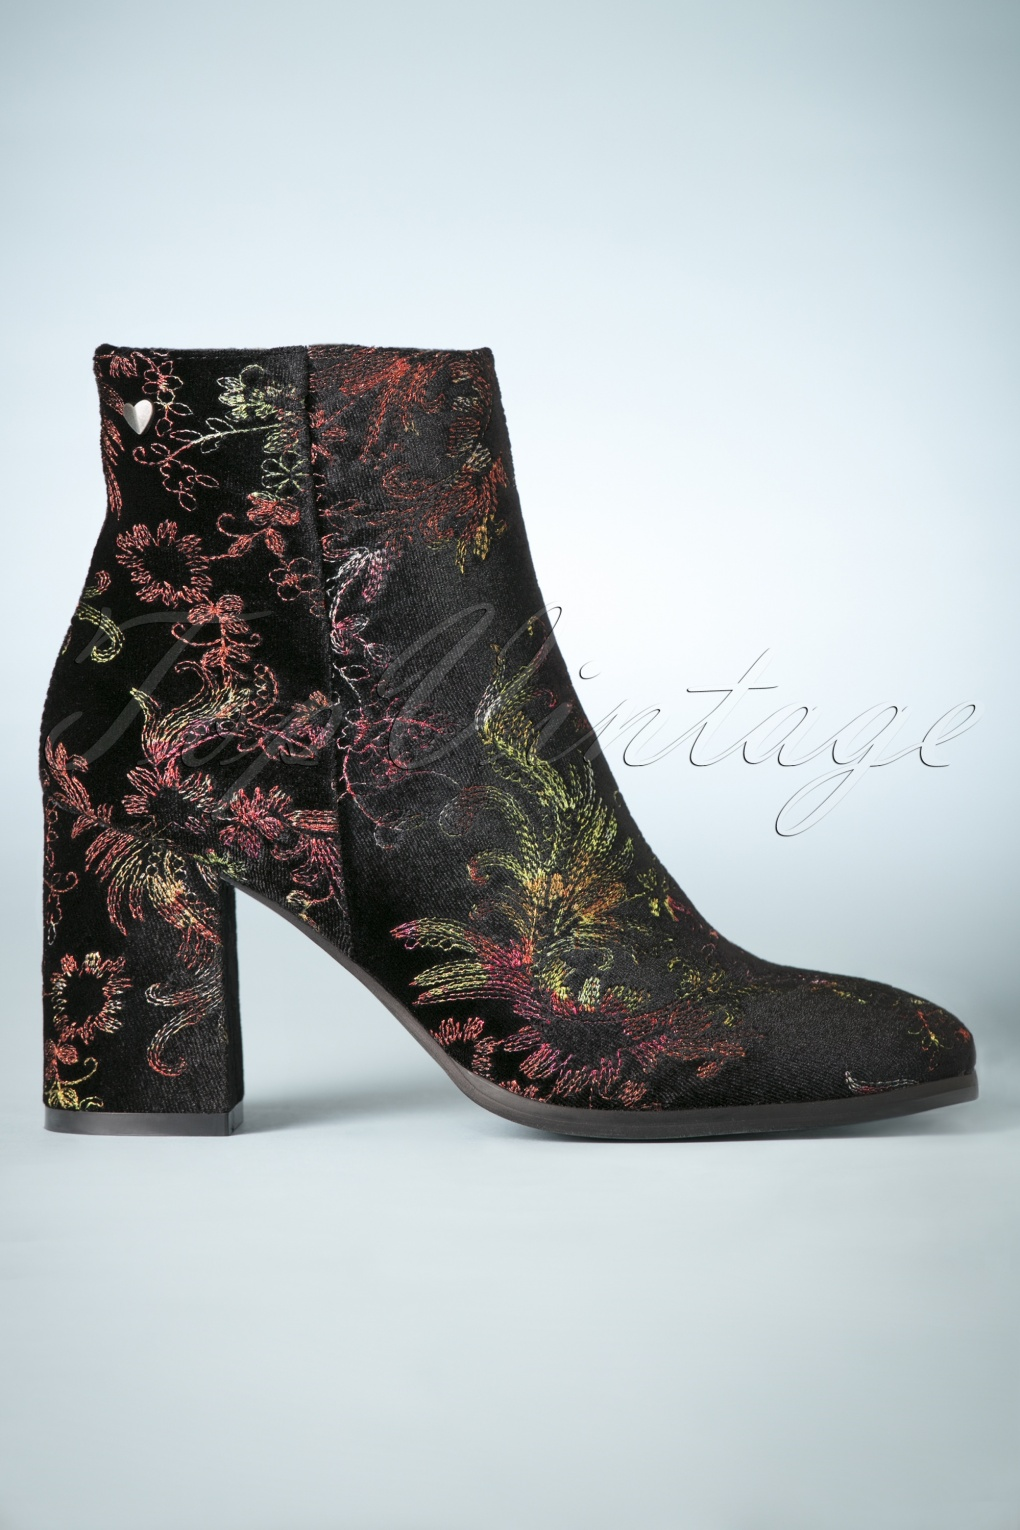 Retro Boots, Granny Boots, 70s Boots 70s Floral Explosion Velvet Ankle Booties in Black £44.36 AT vintagedancer.com